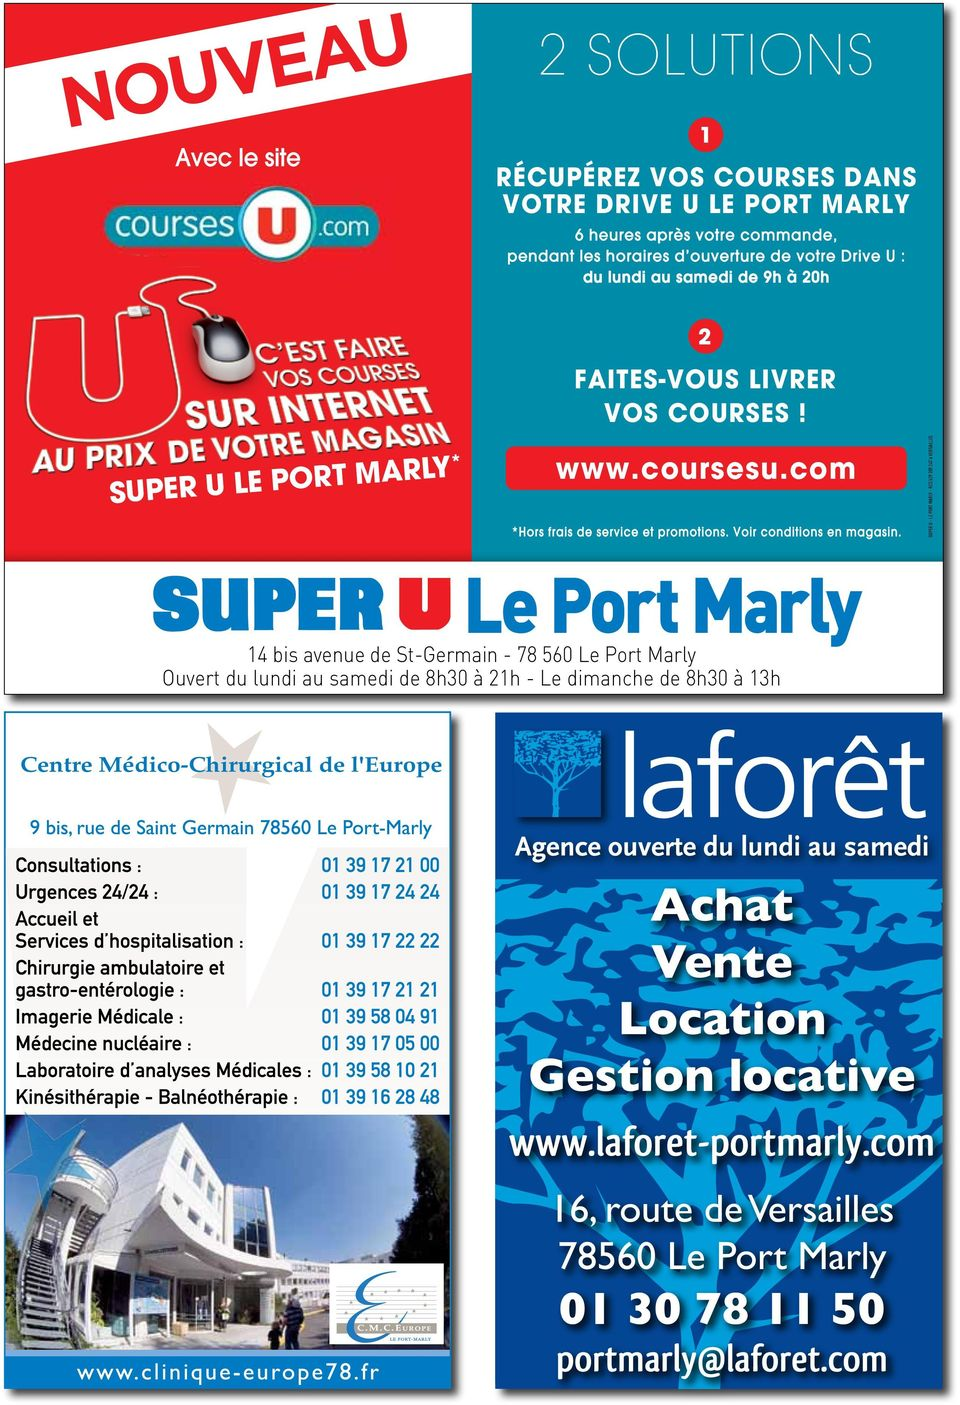 SUPER U - LE PORT MARLY - RCS 529 309 247 à VERSAILLES ignatures.